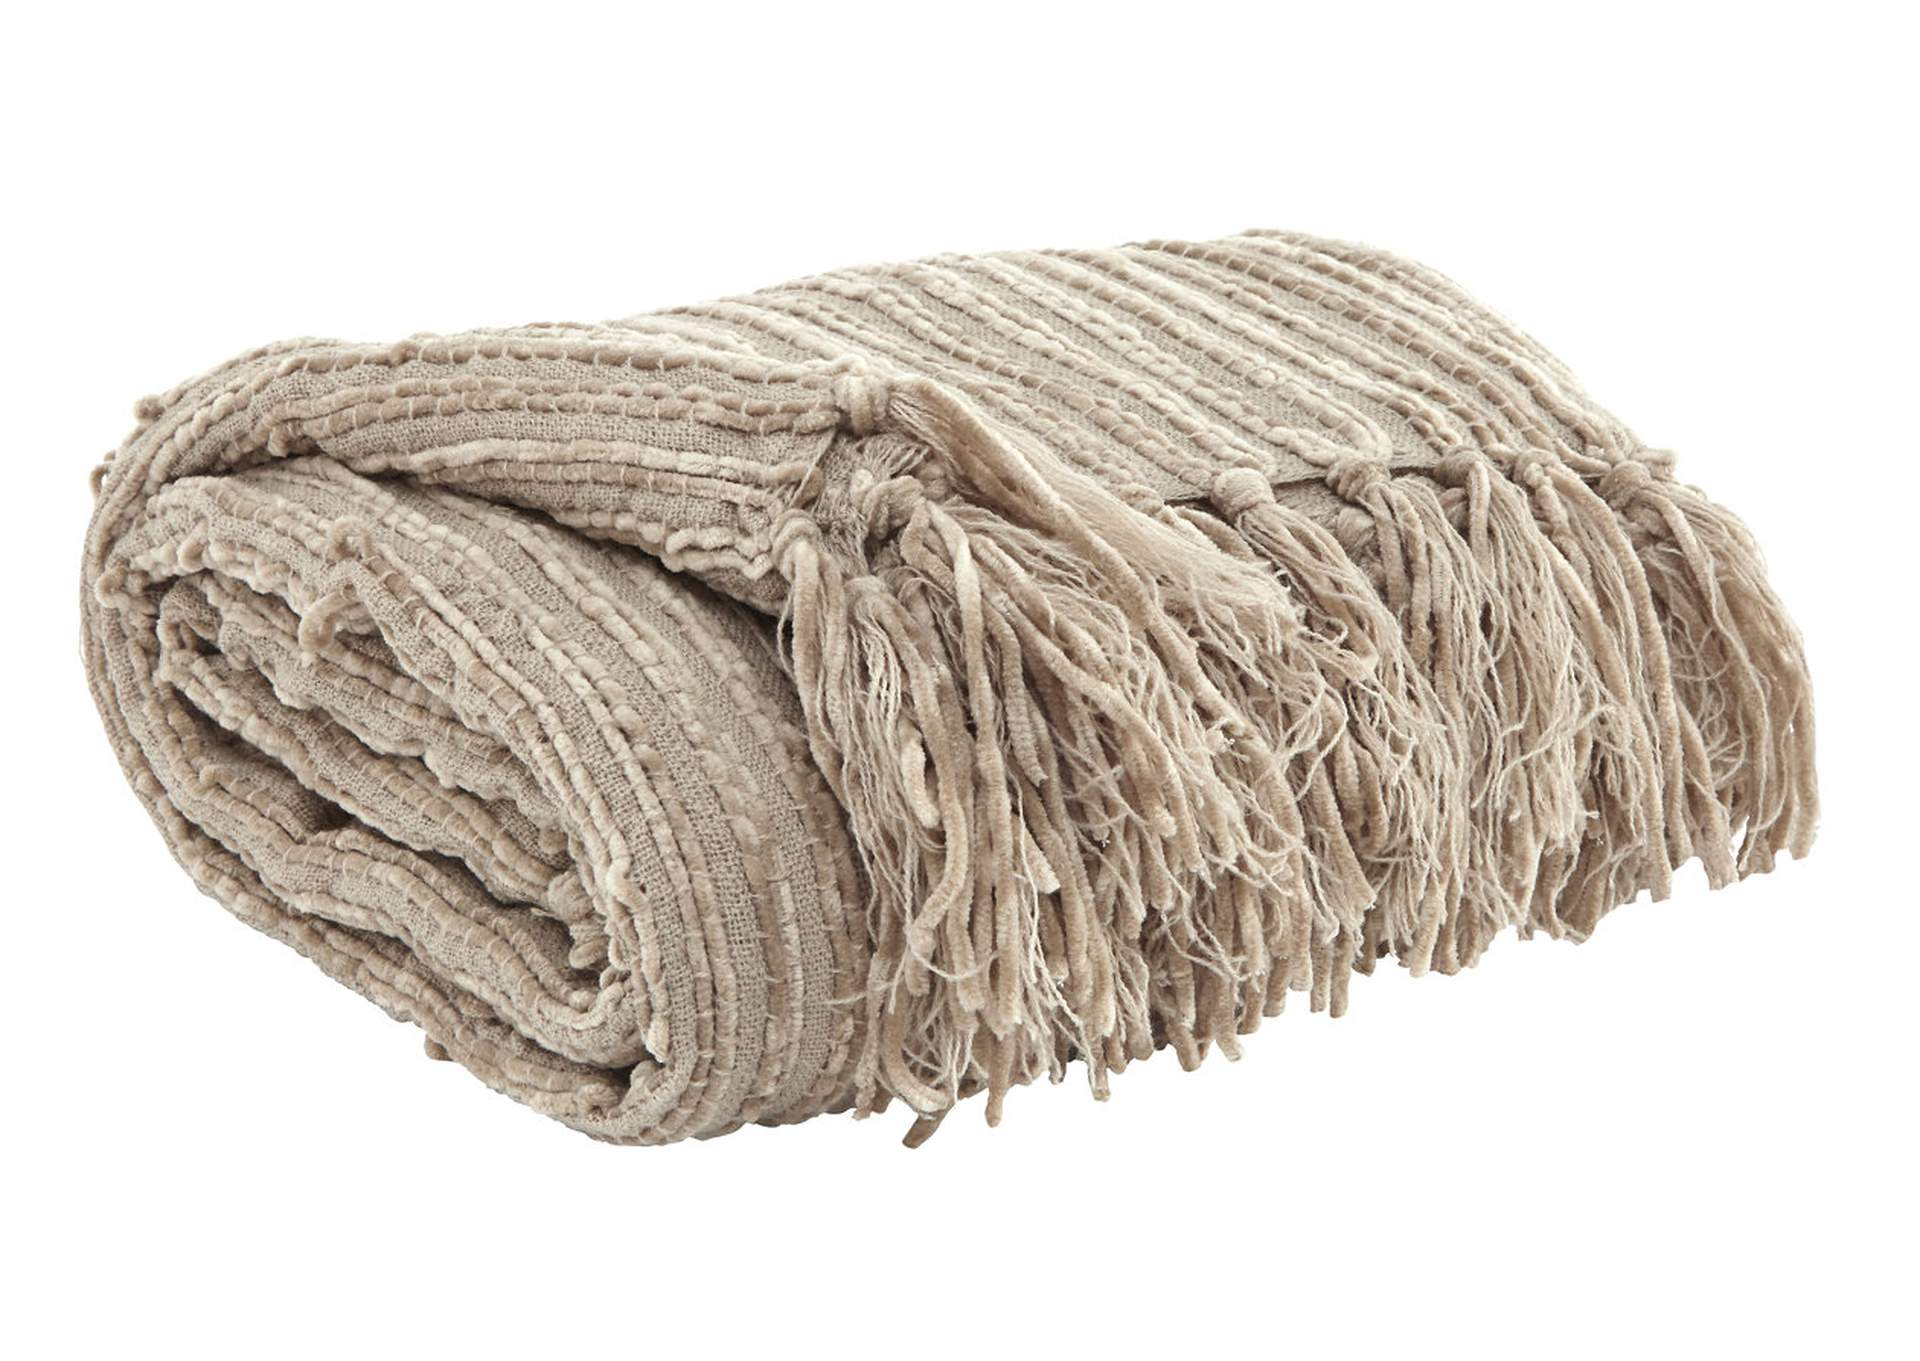 Noland Almond Throw,ABF Signature Design by Ashley